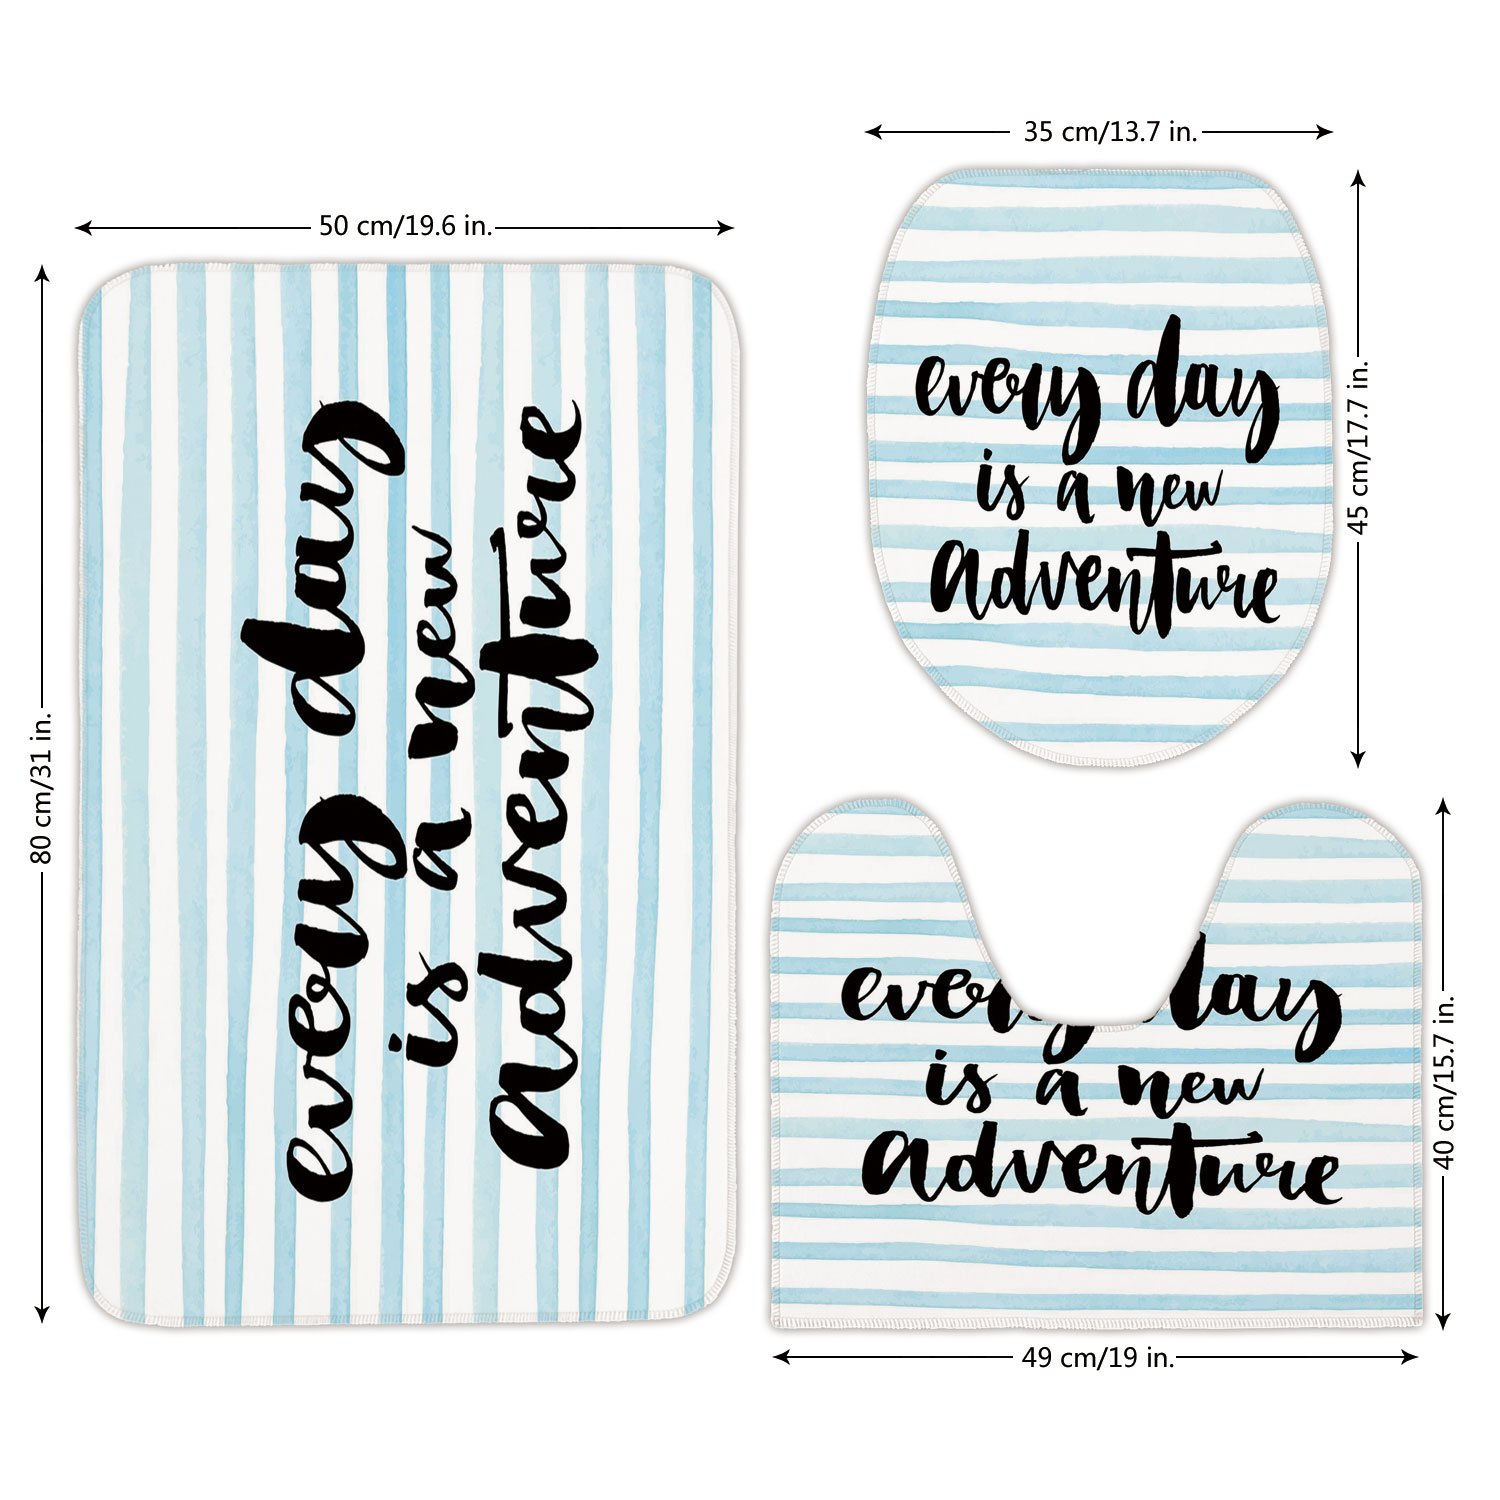 3 Piece Bathroom Mat Set,Adventure,Every Day is a New Adventure Quote Inspirational Things About Life Artwork,Baby Blue Black,Bath Mat,Bathroom Carpet Rug,Non-Slip